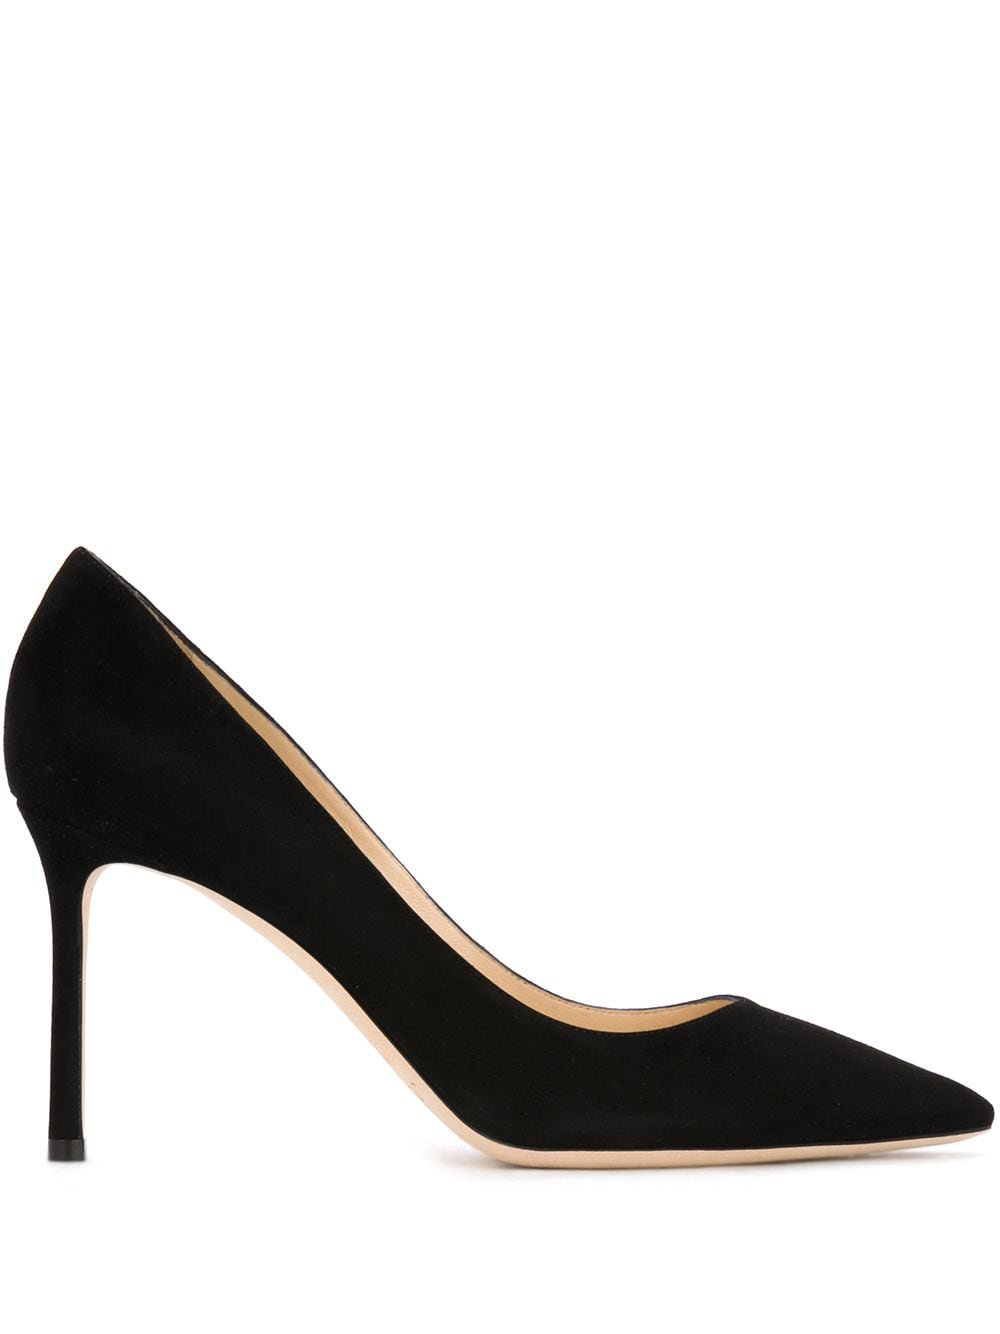 Jimmy Choo Romy 85 Pumps - Farfetch